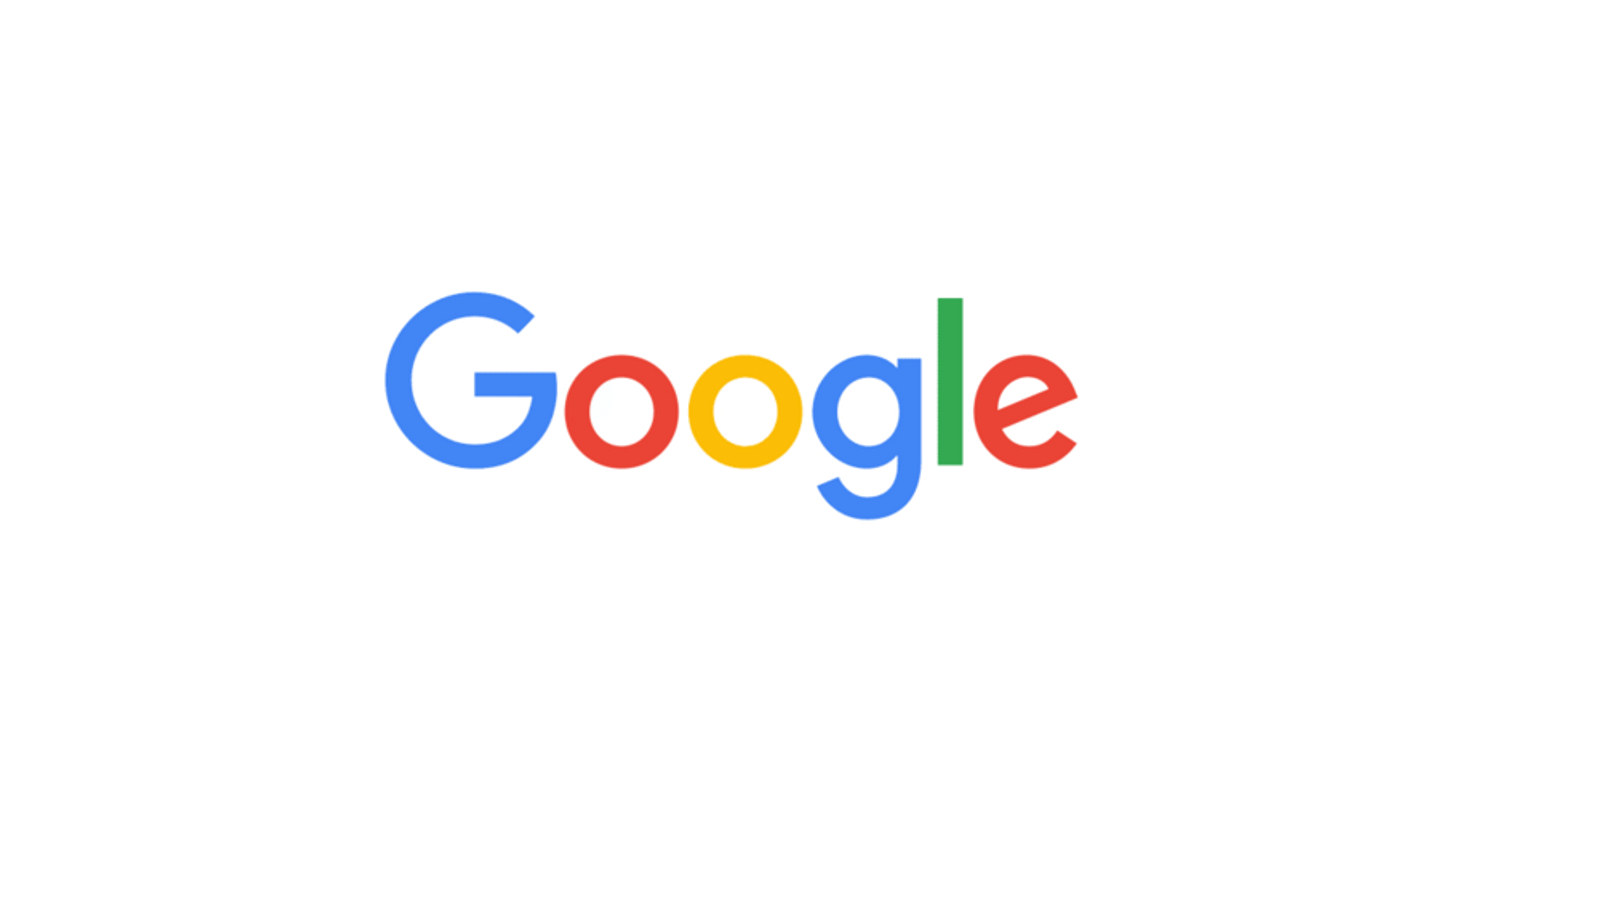 Google Gives Iconic Logo A Major Overhaul